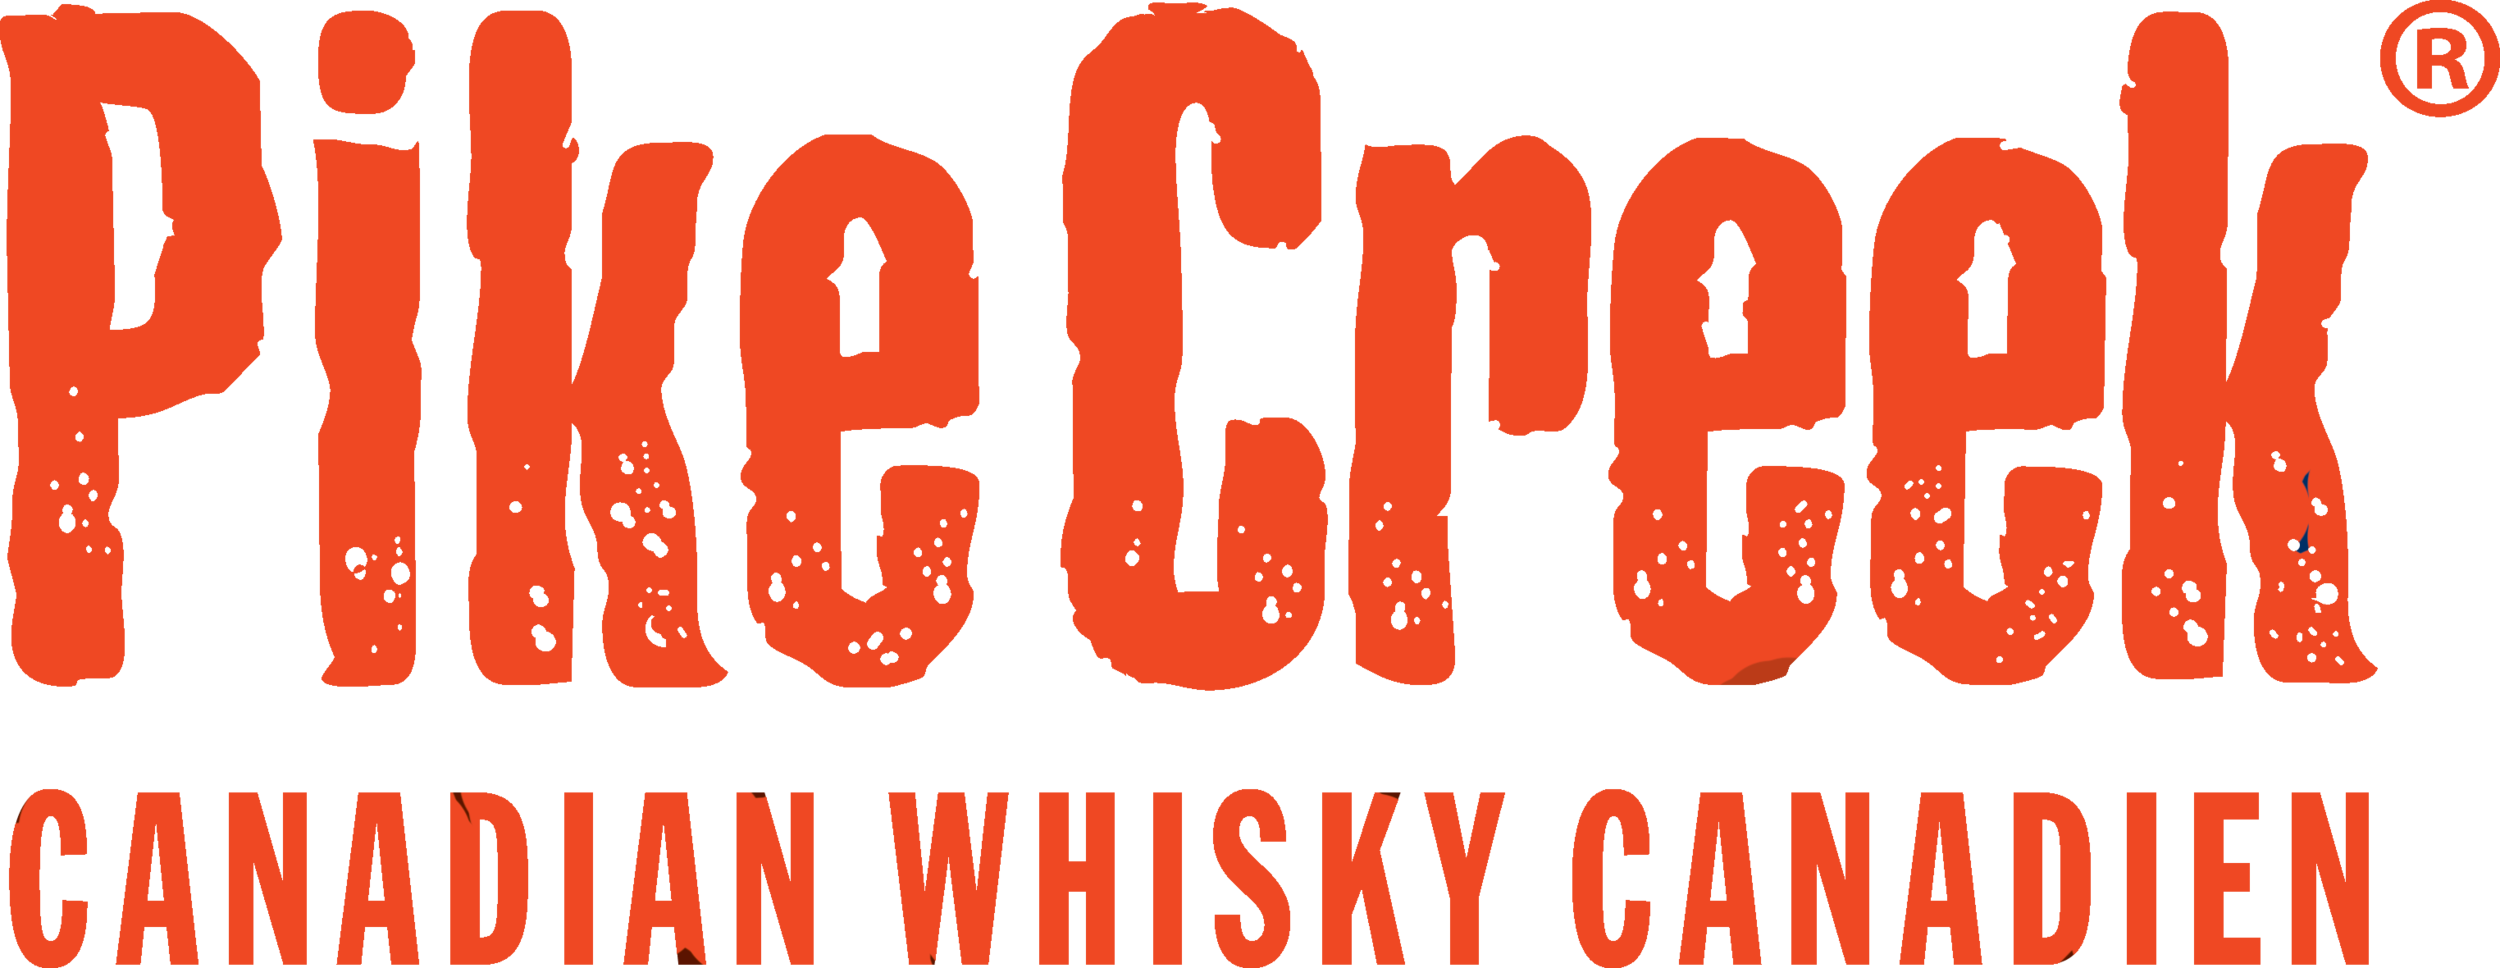 PikeCreek_Whisky_Logo.png